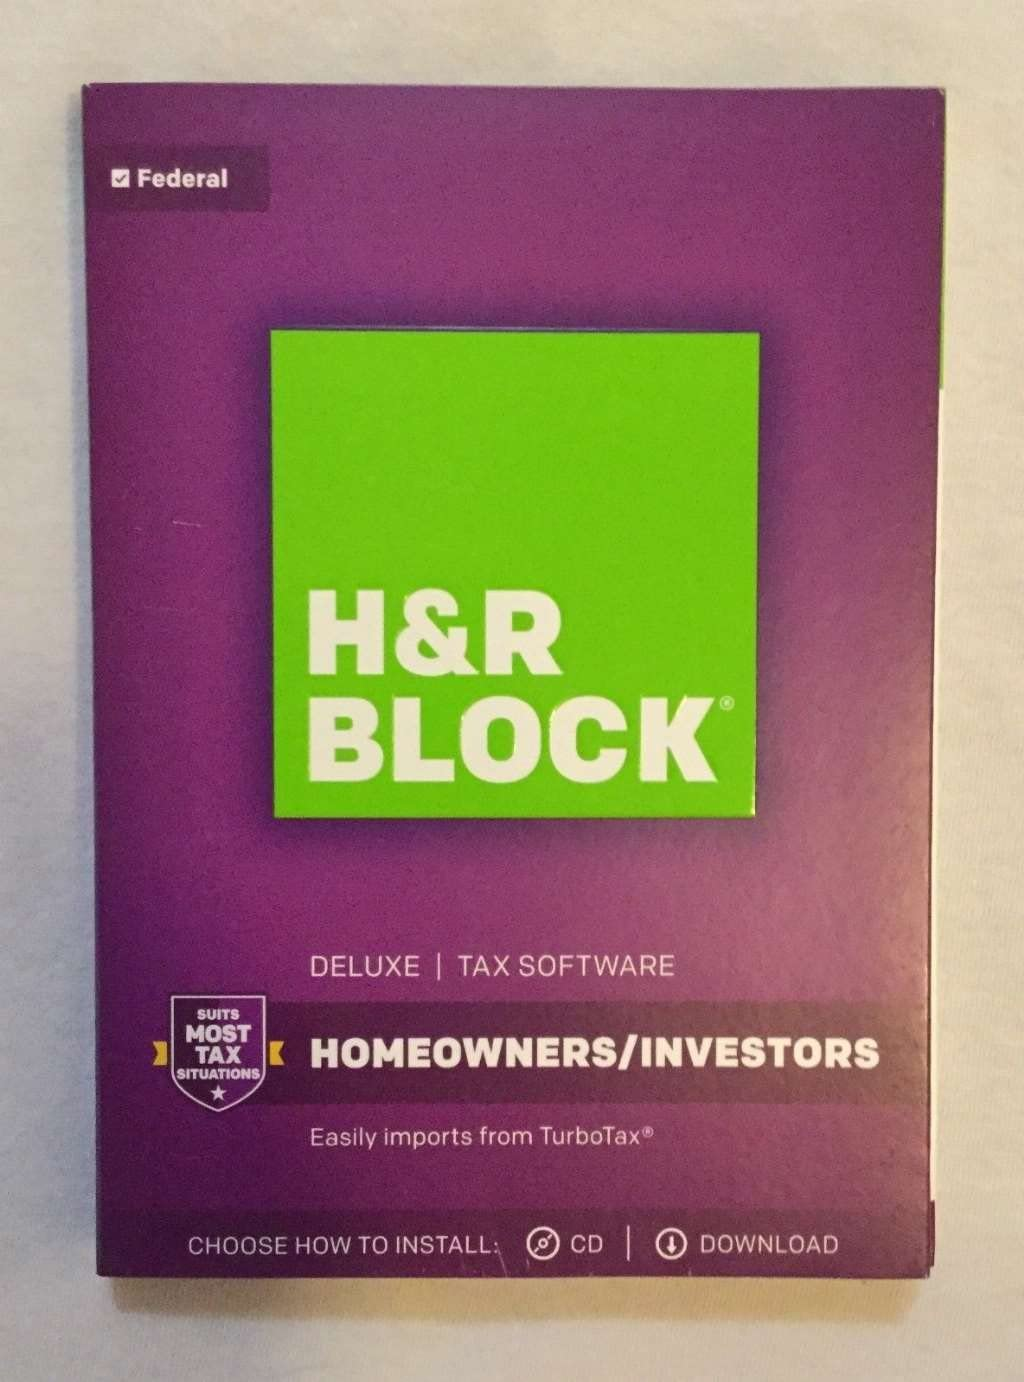 H&R Block 1433600-17 Tax Software Deluxe 2017